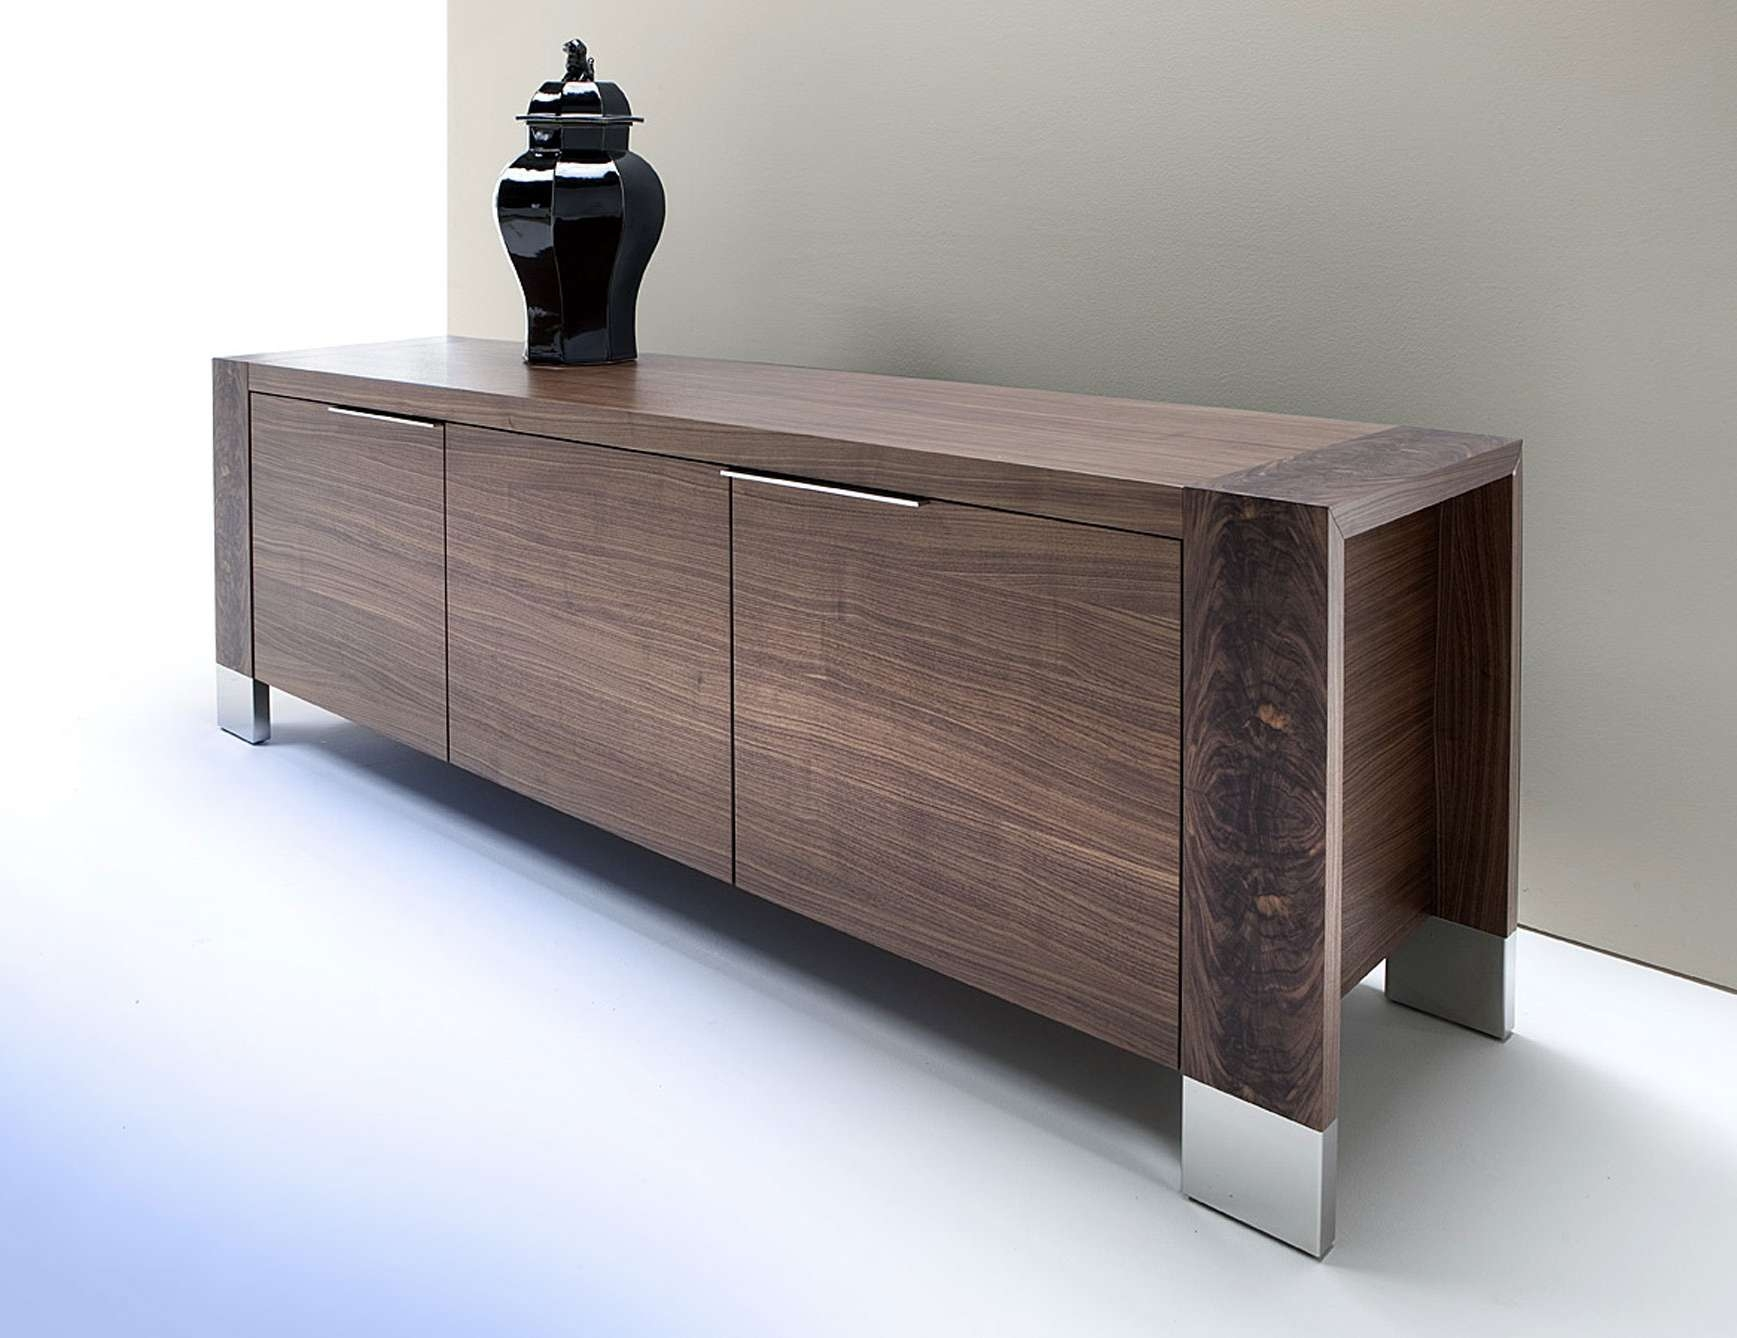 New Credenzas And Sideboards – Bjdgjy With Regard To Modern Buffet Sideboards (View 13 of 20)